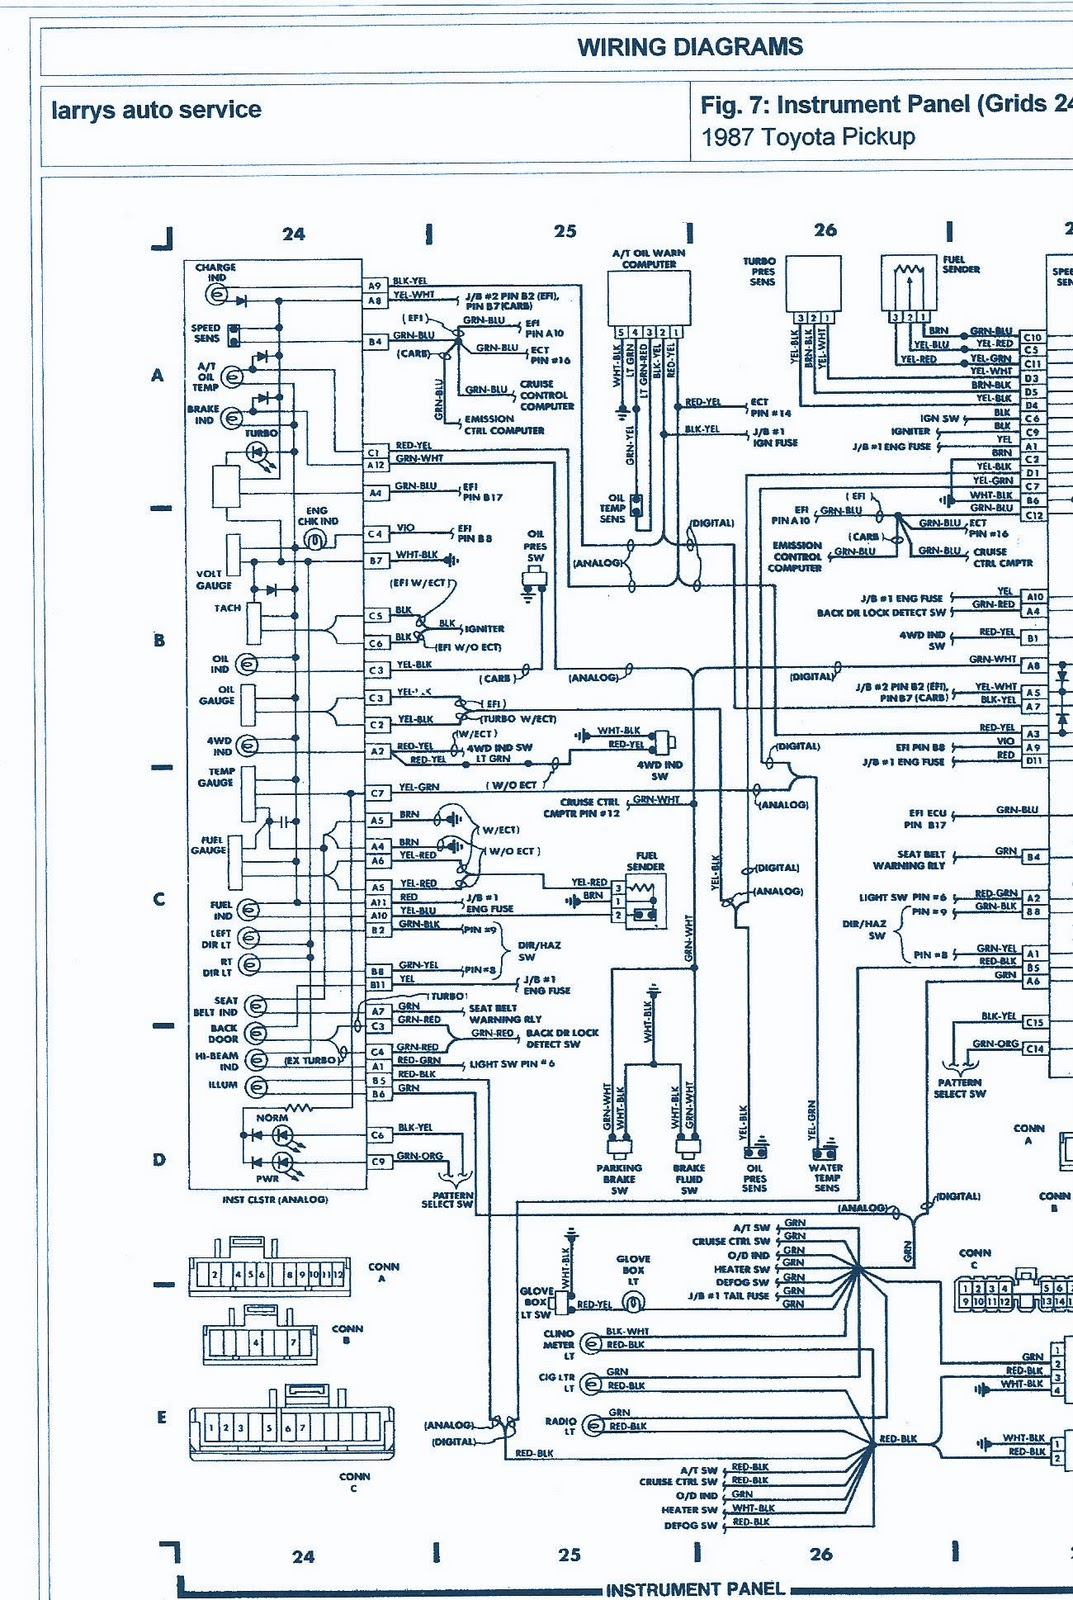 DIAGRAM] 1985 Toyota Truck Wiring Diagram FULL Version HD Quality Wiring  Diagram - MANO-DIAGRAM.MORNINGKISS.FRDiagram Database